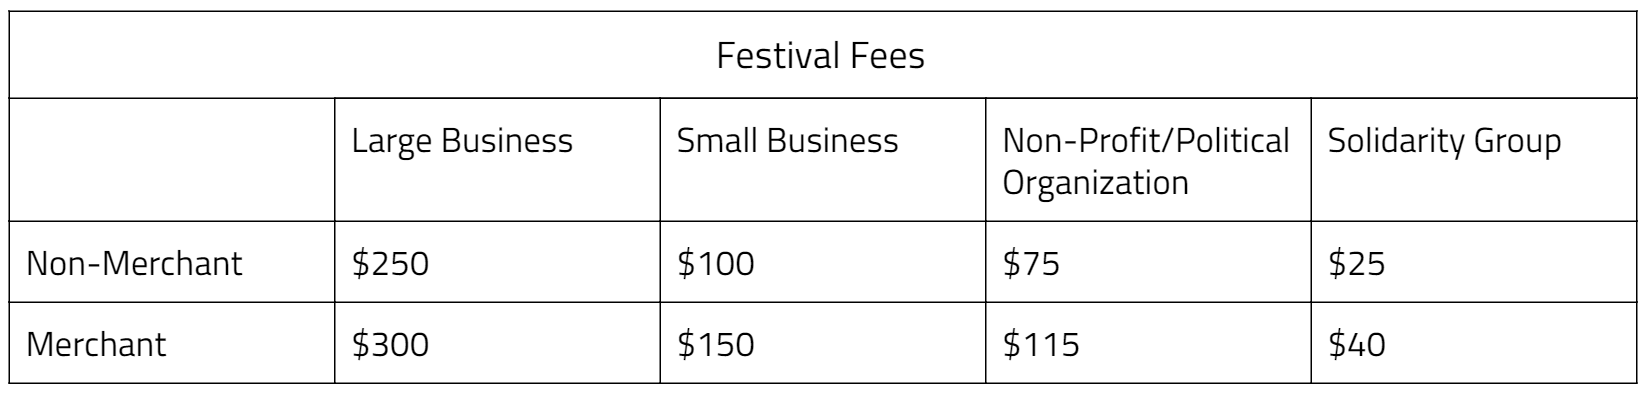 festival fees.PNG